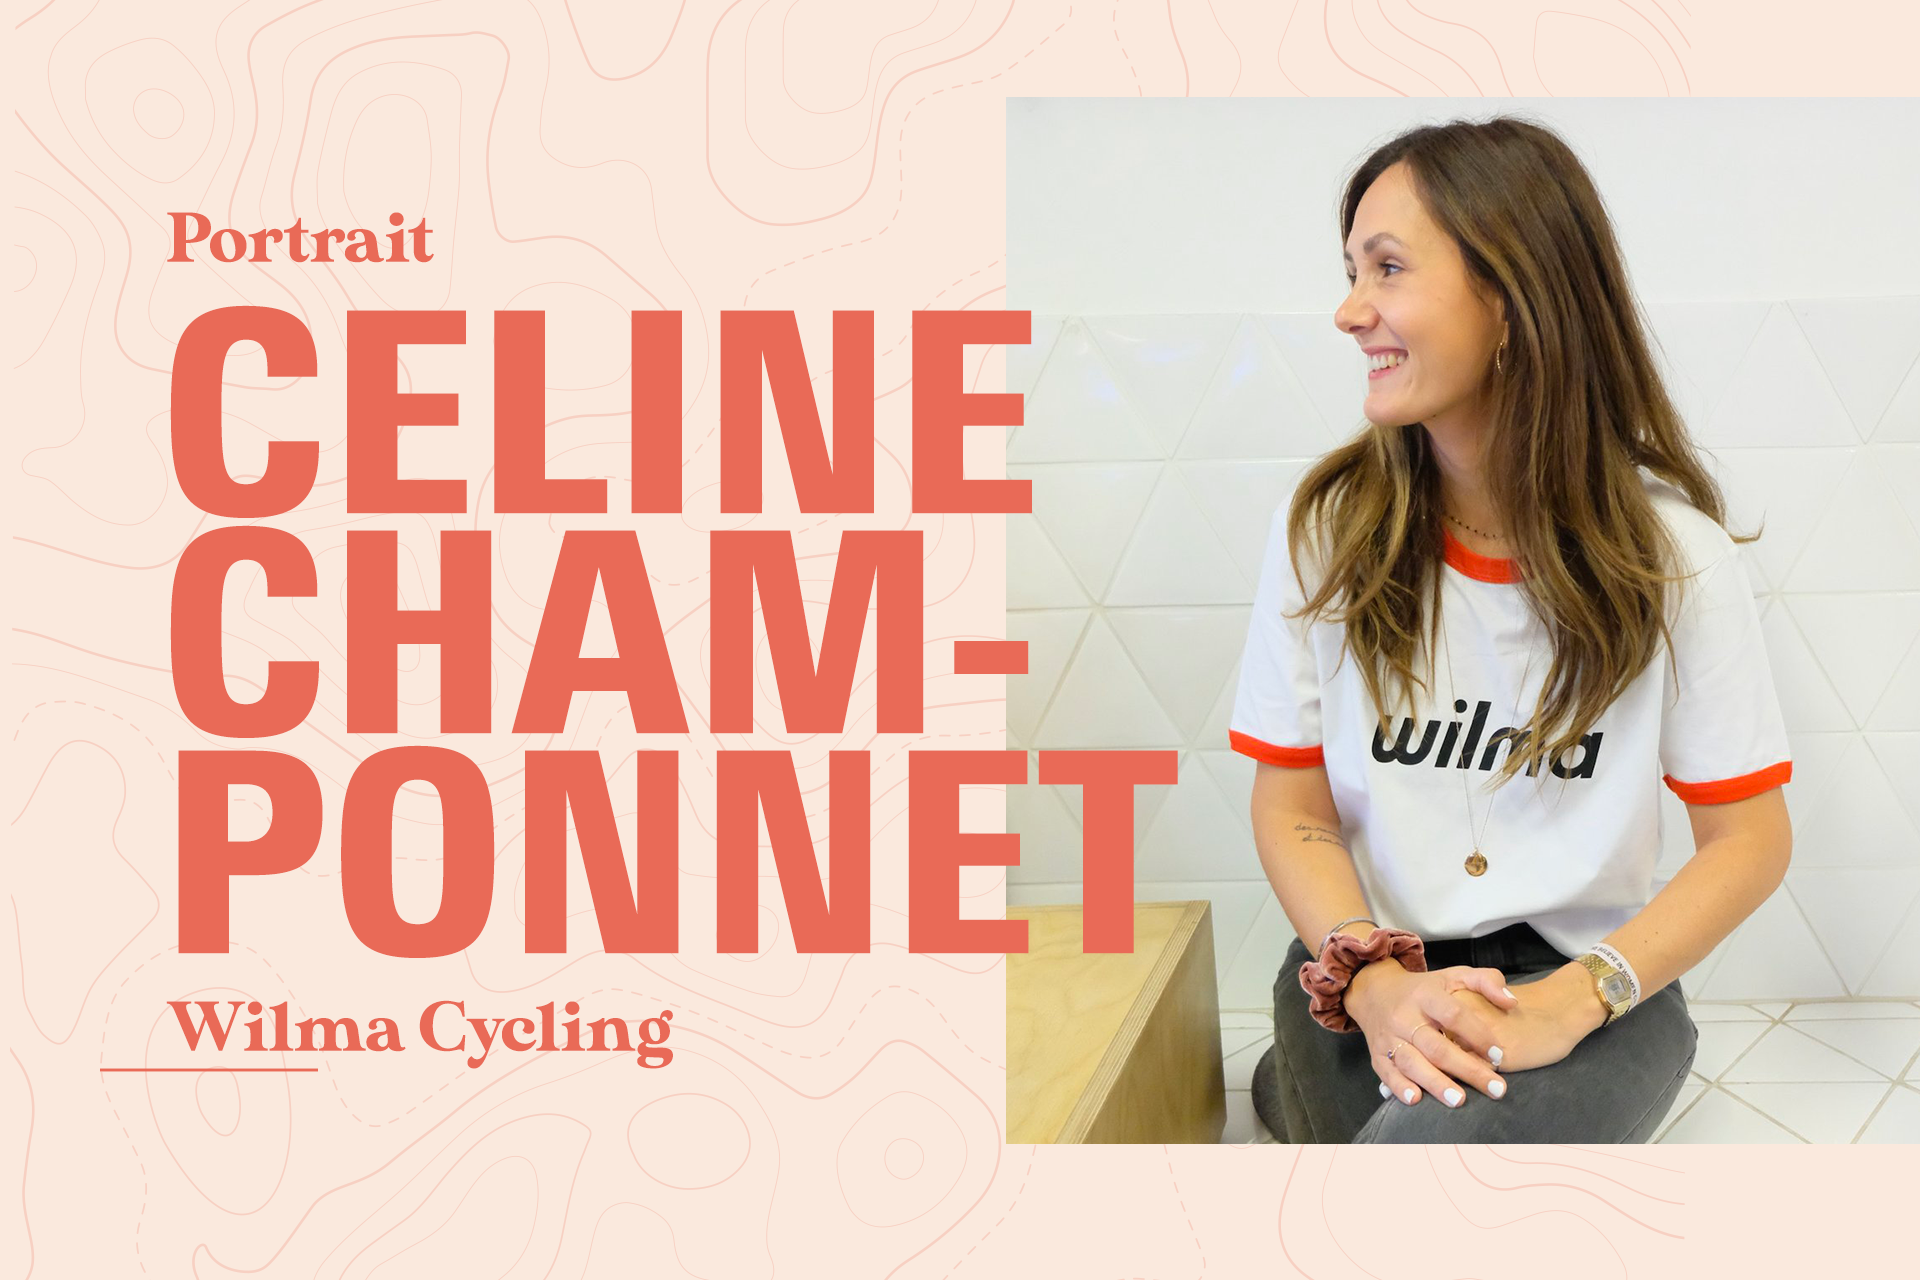 Wilma-Les-Rookies-Celine-Champonnet-Women-Cycling-Cover